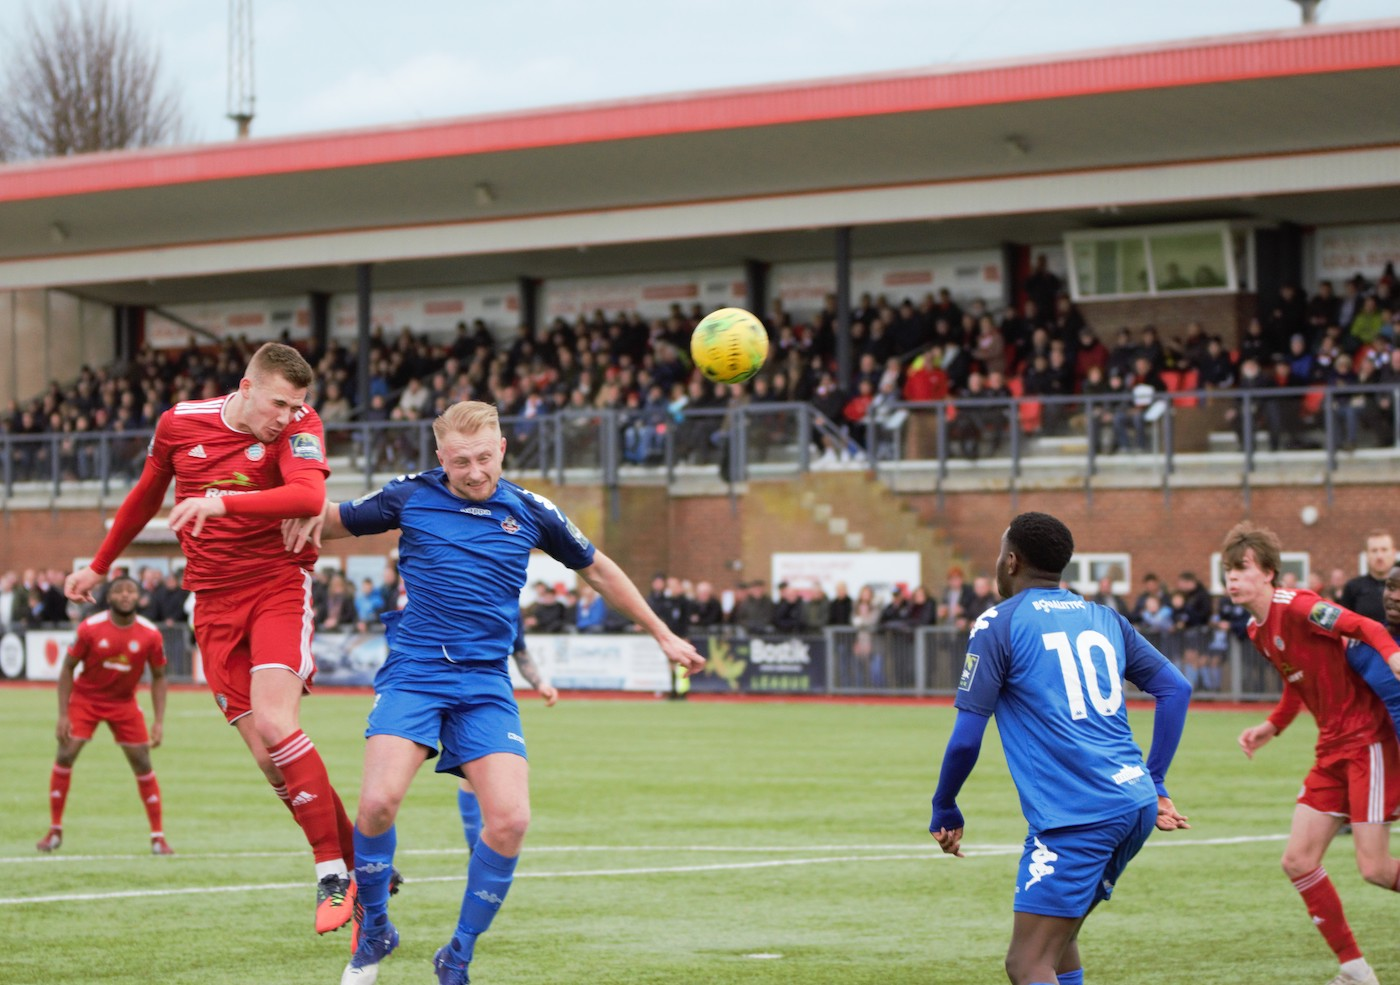 Read the full article - HIGHLIGHTS: Worthing 3-4 Lewes [H] – League